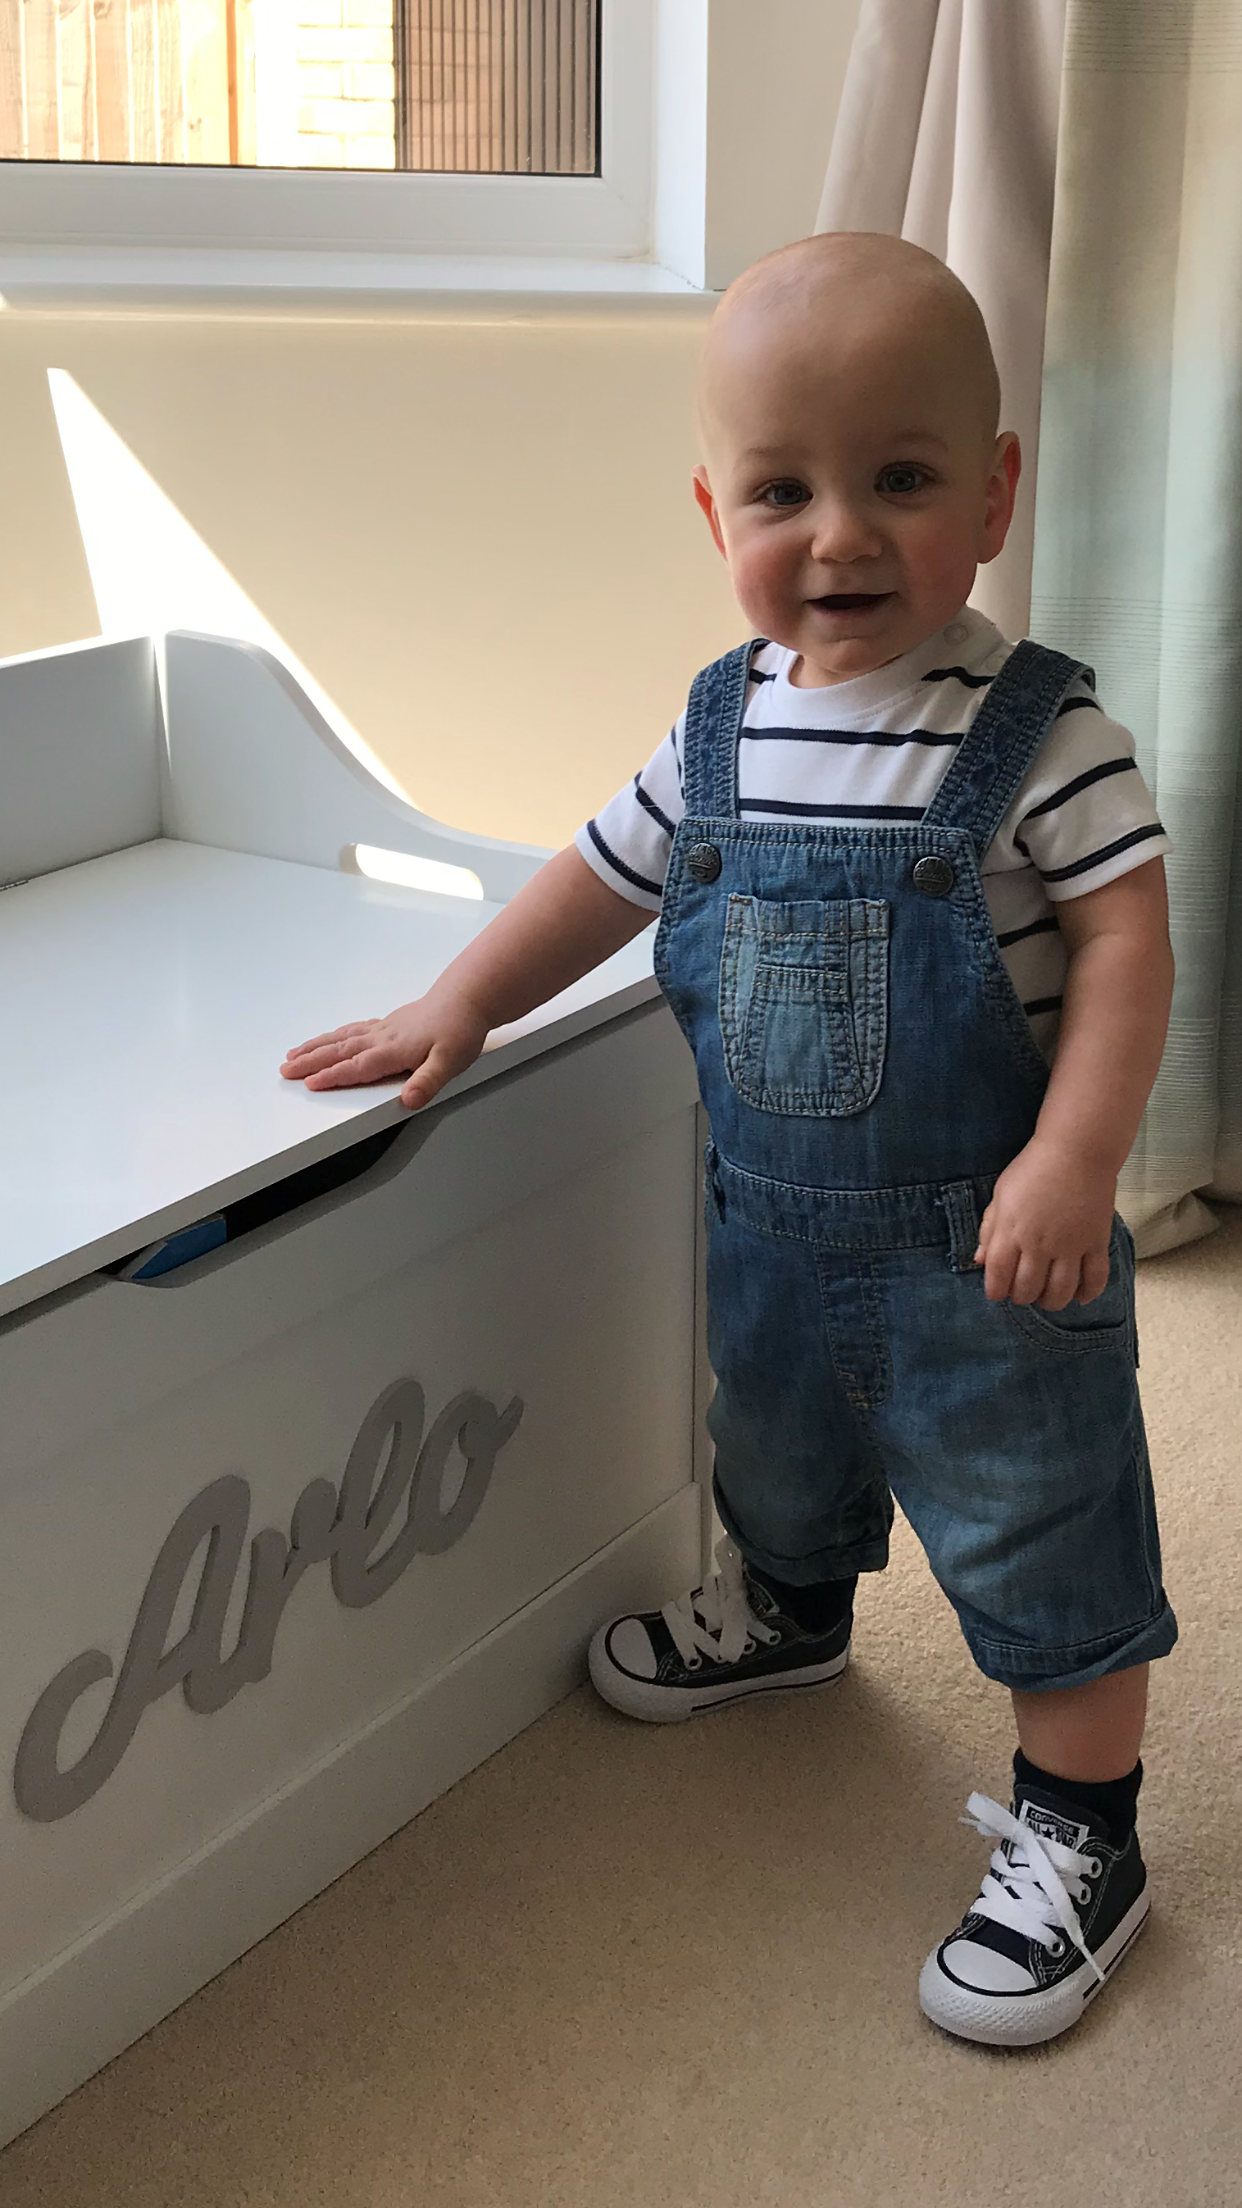 Arlo - Ben's story about running the London Marathon for Bliss